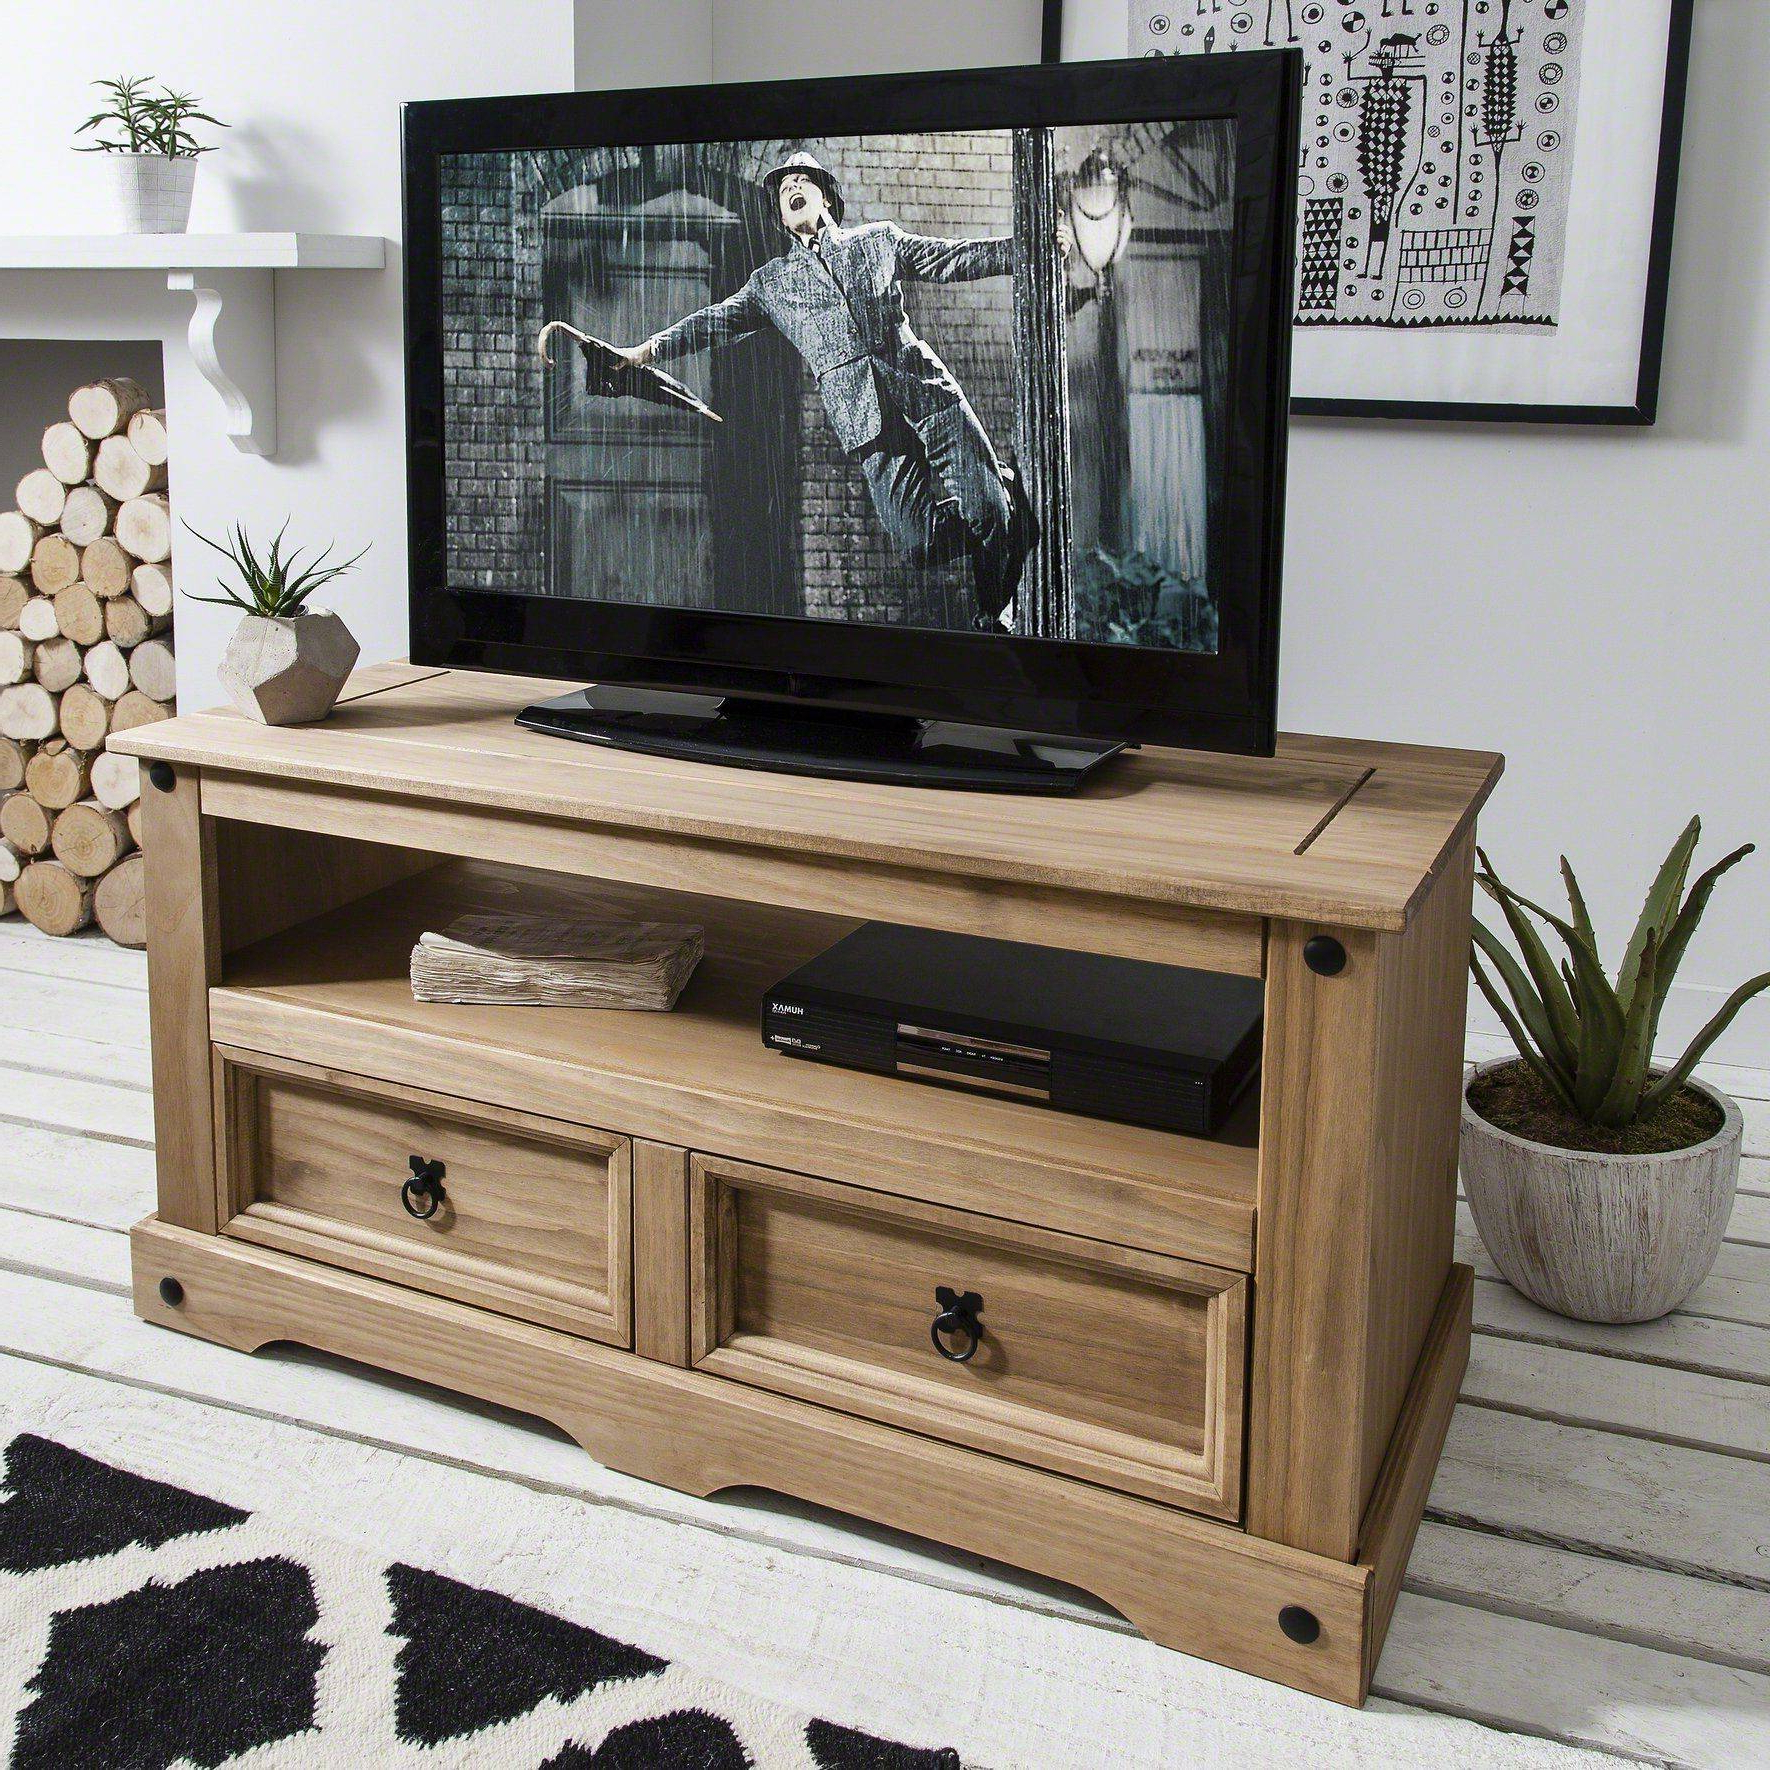 Unique Tv Stands For Flat Screens With Regard To 2018 Cheap Flat Screen Tv Stands Unique Laura James Flat Screen Tv Unit (View 11 of 20)